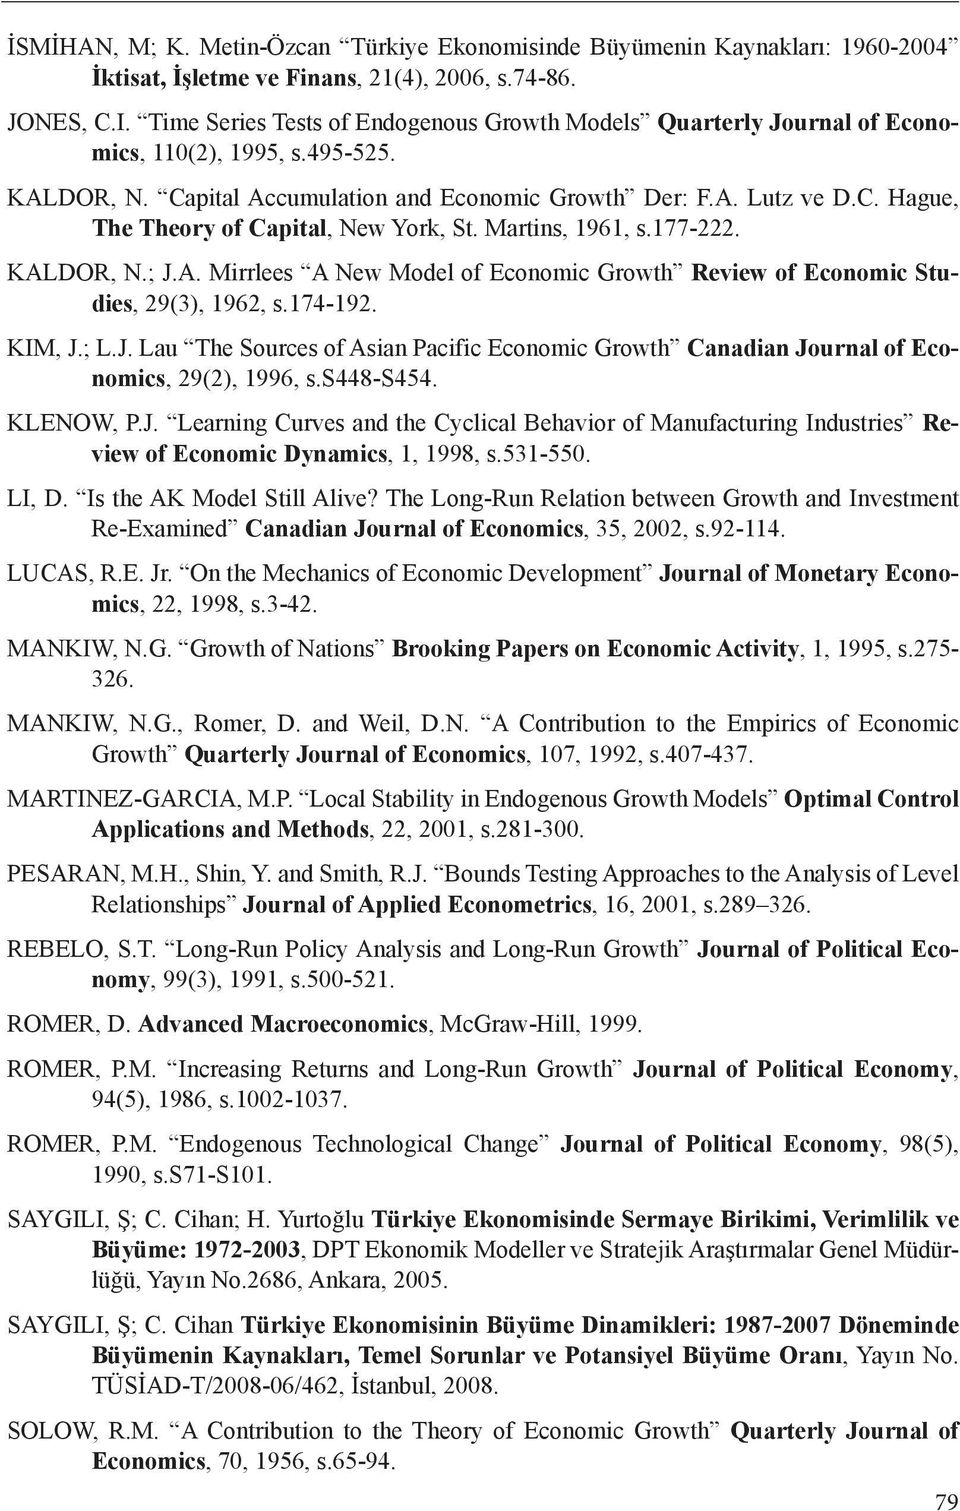 Martins, 1961, s.177-222. KALDOR, N.; J.A. Mirrlees A New Model of Economic Growth Review of Economic Studies, 29(3), 1962, s.174-192. KIM, J.; L.J. Lau The Sources of Asian Pacific Economic Growth Canadian Journal of Economics, 29(2), 1996, s.